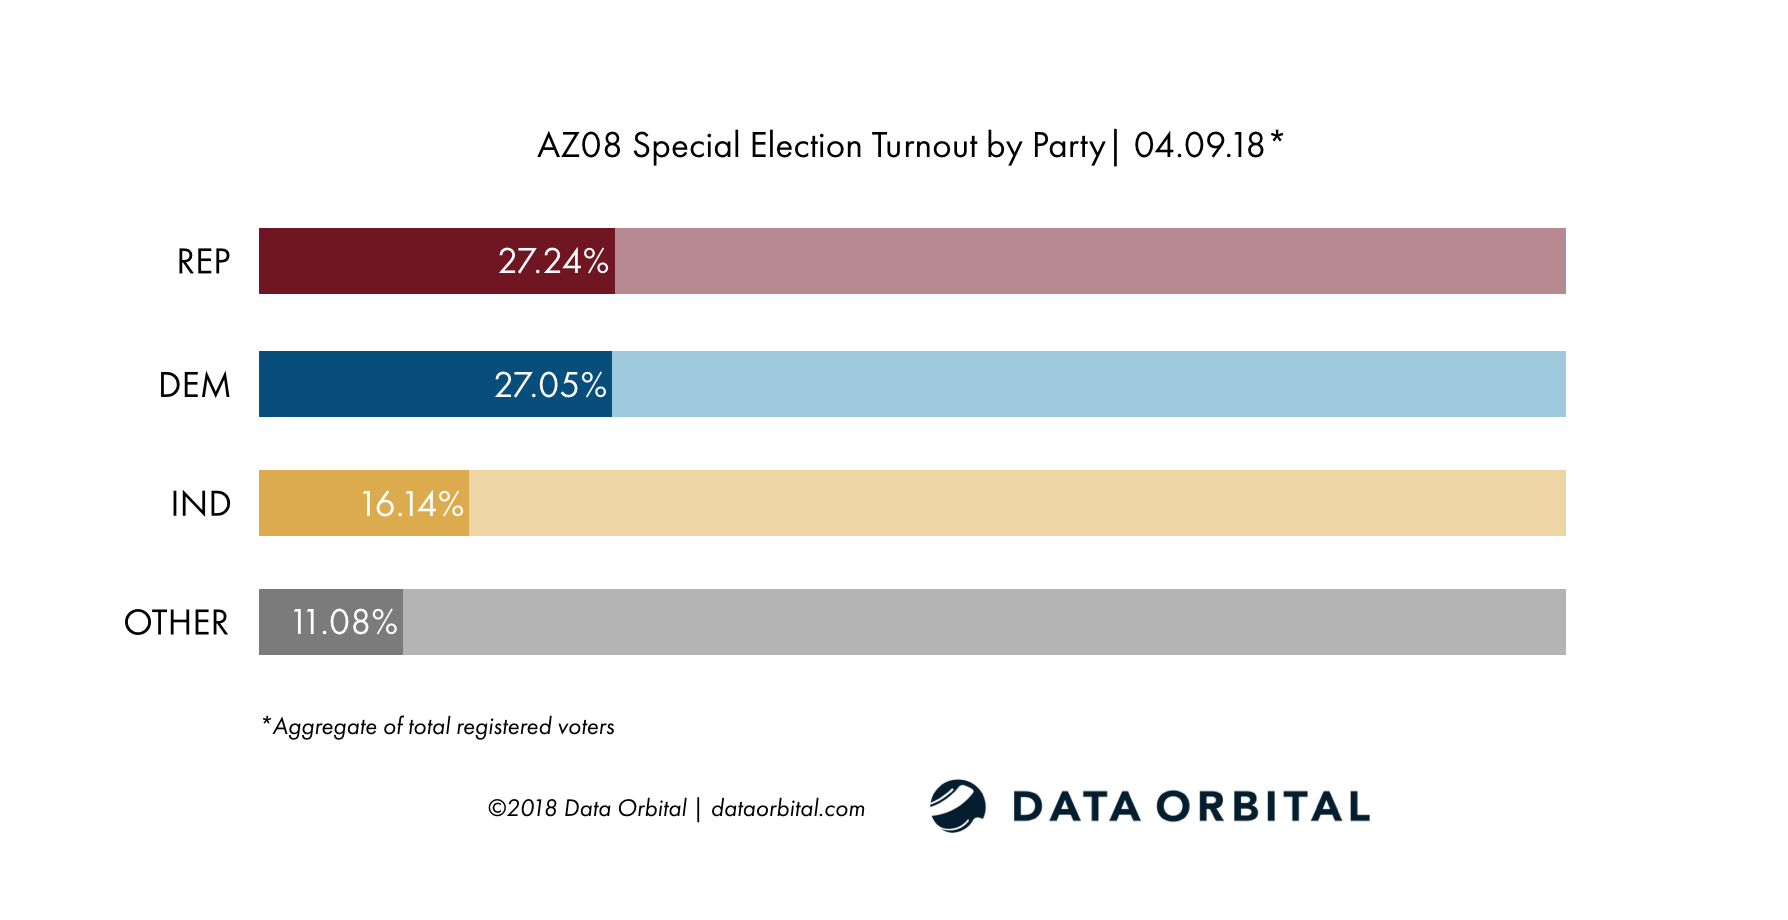 AZ08 Special Election Turnout by Party 04_09_18